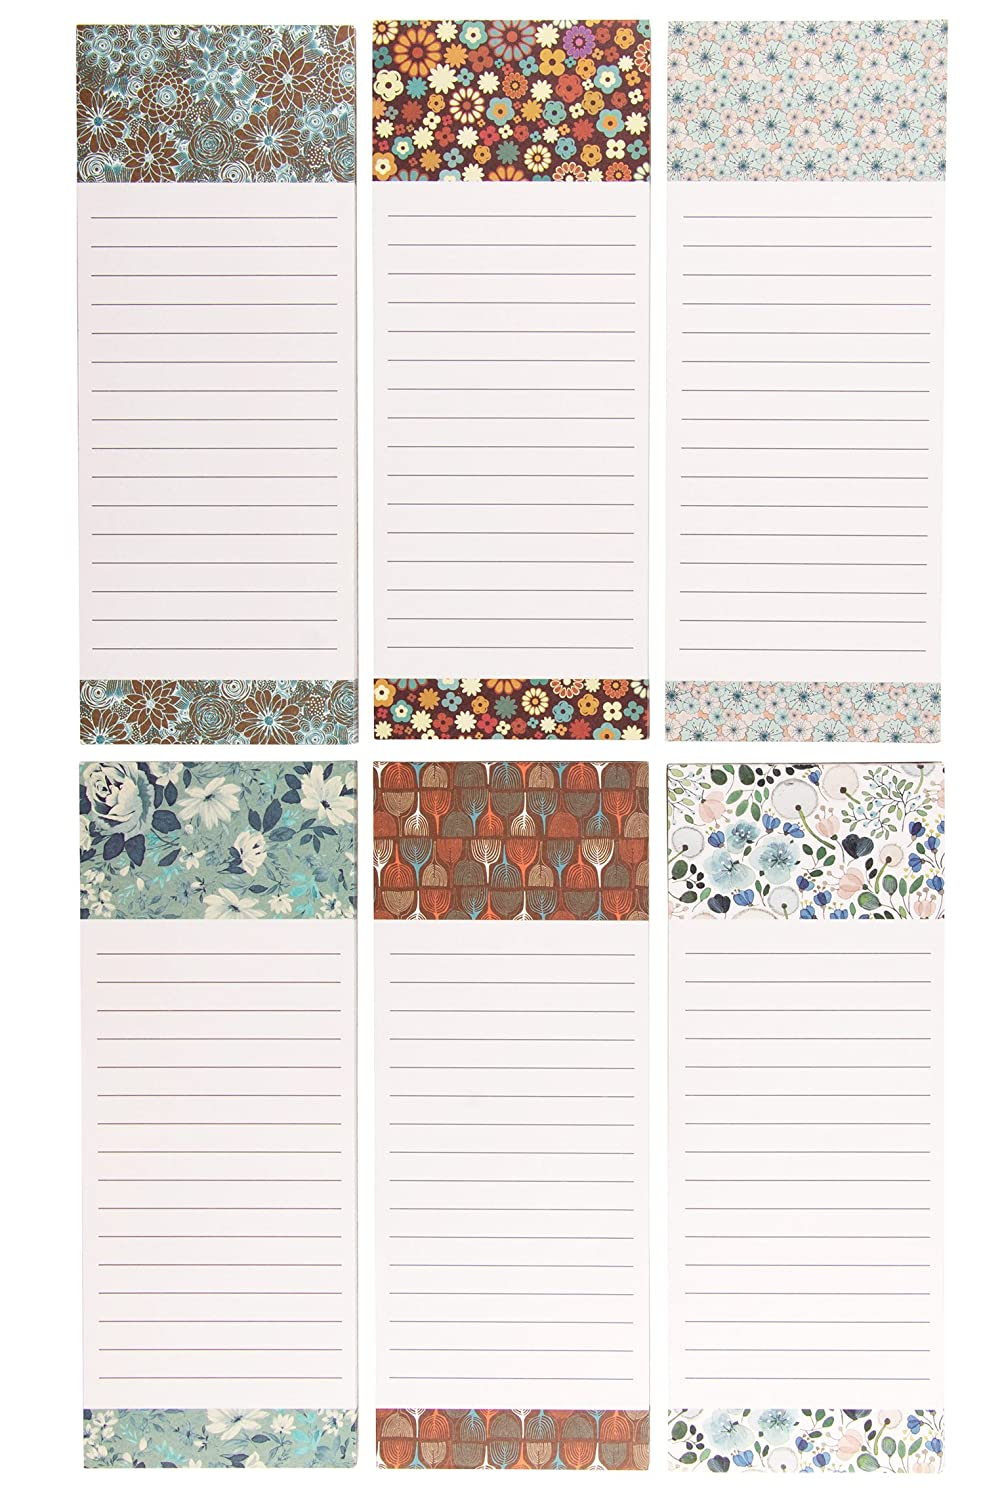 Juvale Magnetic Shopping List for Fridge, Floral To-Do List Refrigerator Notepad approx. 60 sheets each, 3.5 x 9 inches